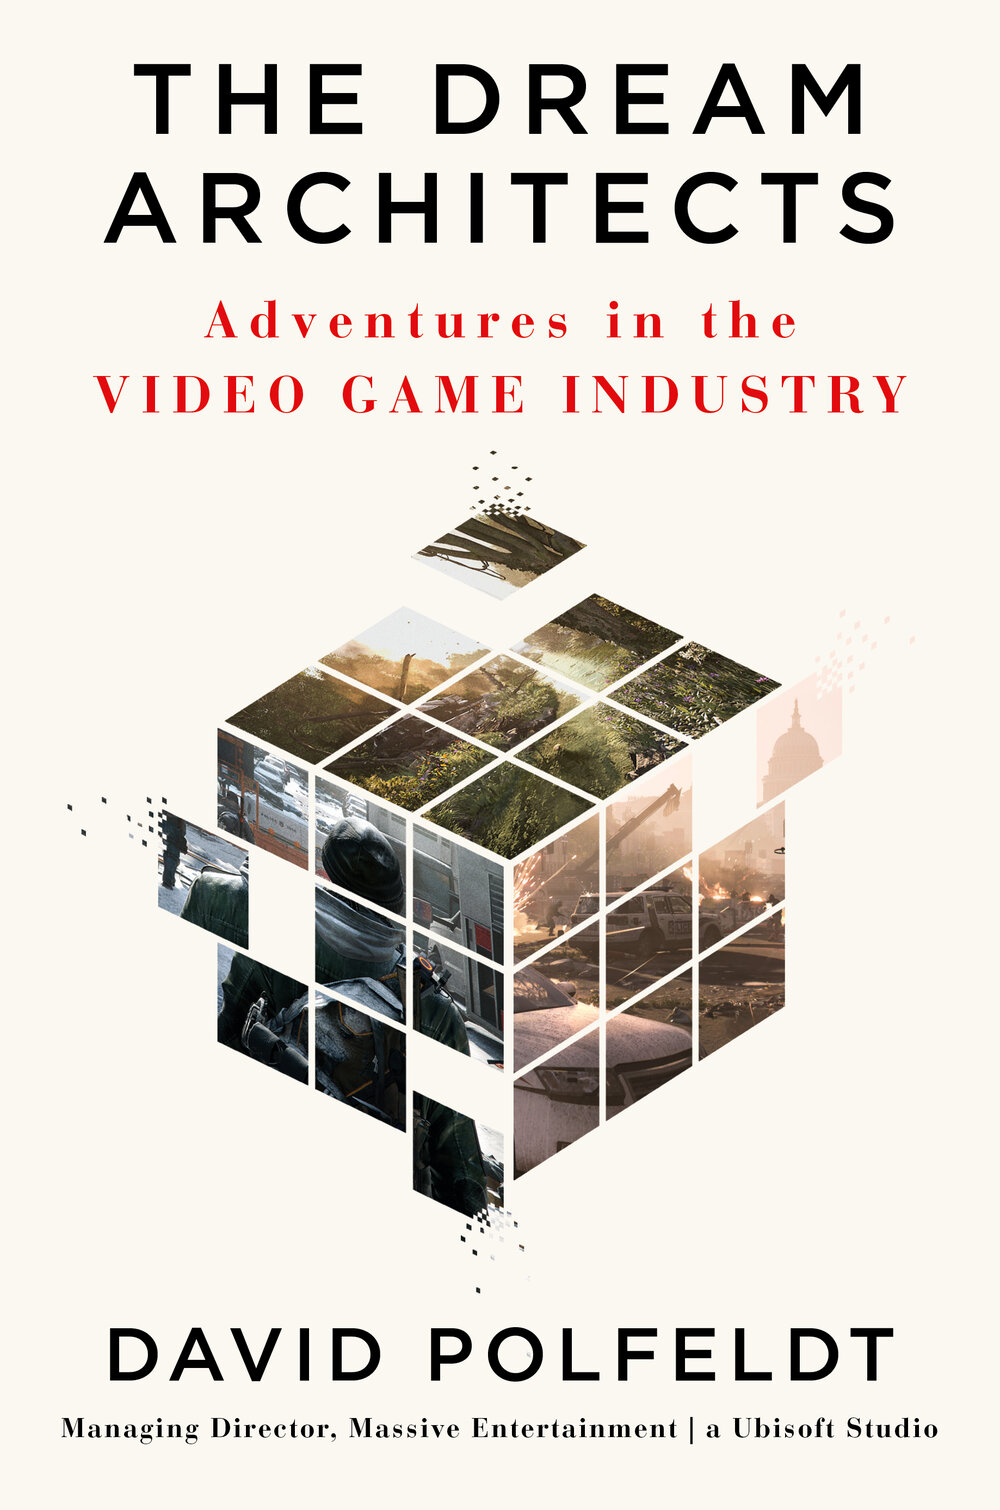 The Dream Architects: Adventures in the Video Game Industry by David Polfeldt